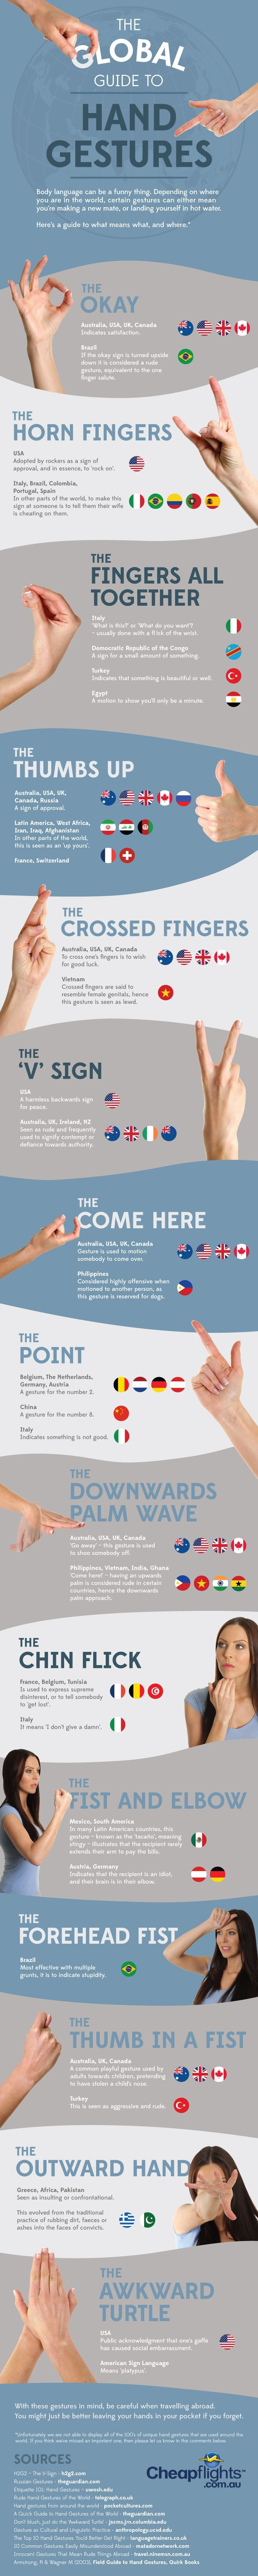 Infographic: The Global Guide to Hand Gestures http://www.huffingtonpost.com/2014/03/17/the-global-guide-to-hand-_n_4956860.html?ncid=fcbklnkushpmg00000063